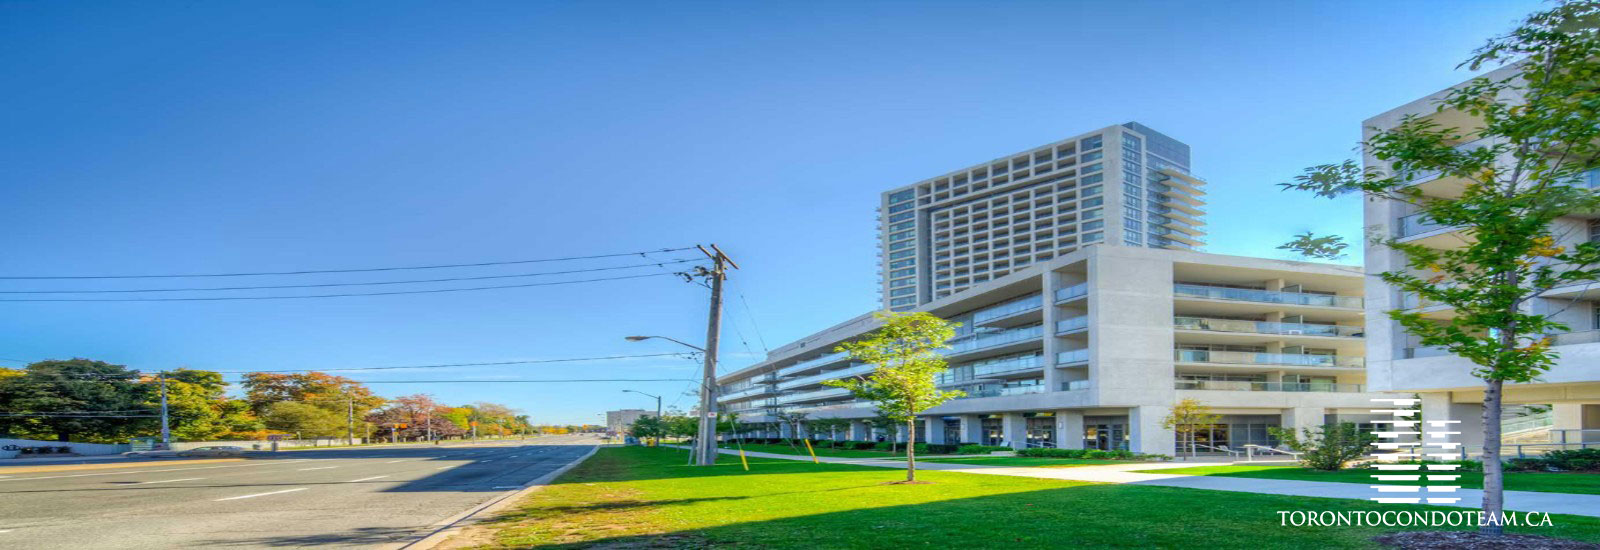 30 Heron's Hill Way & 2035 Sheppard Avenue East Condos For Sale